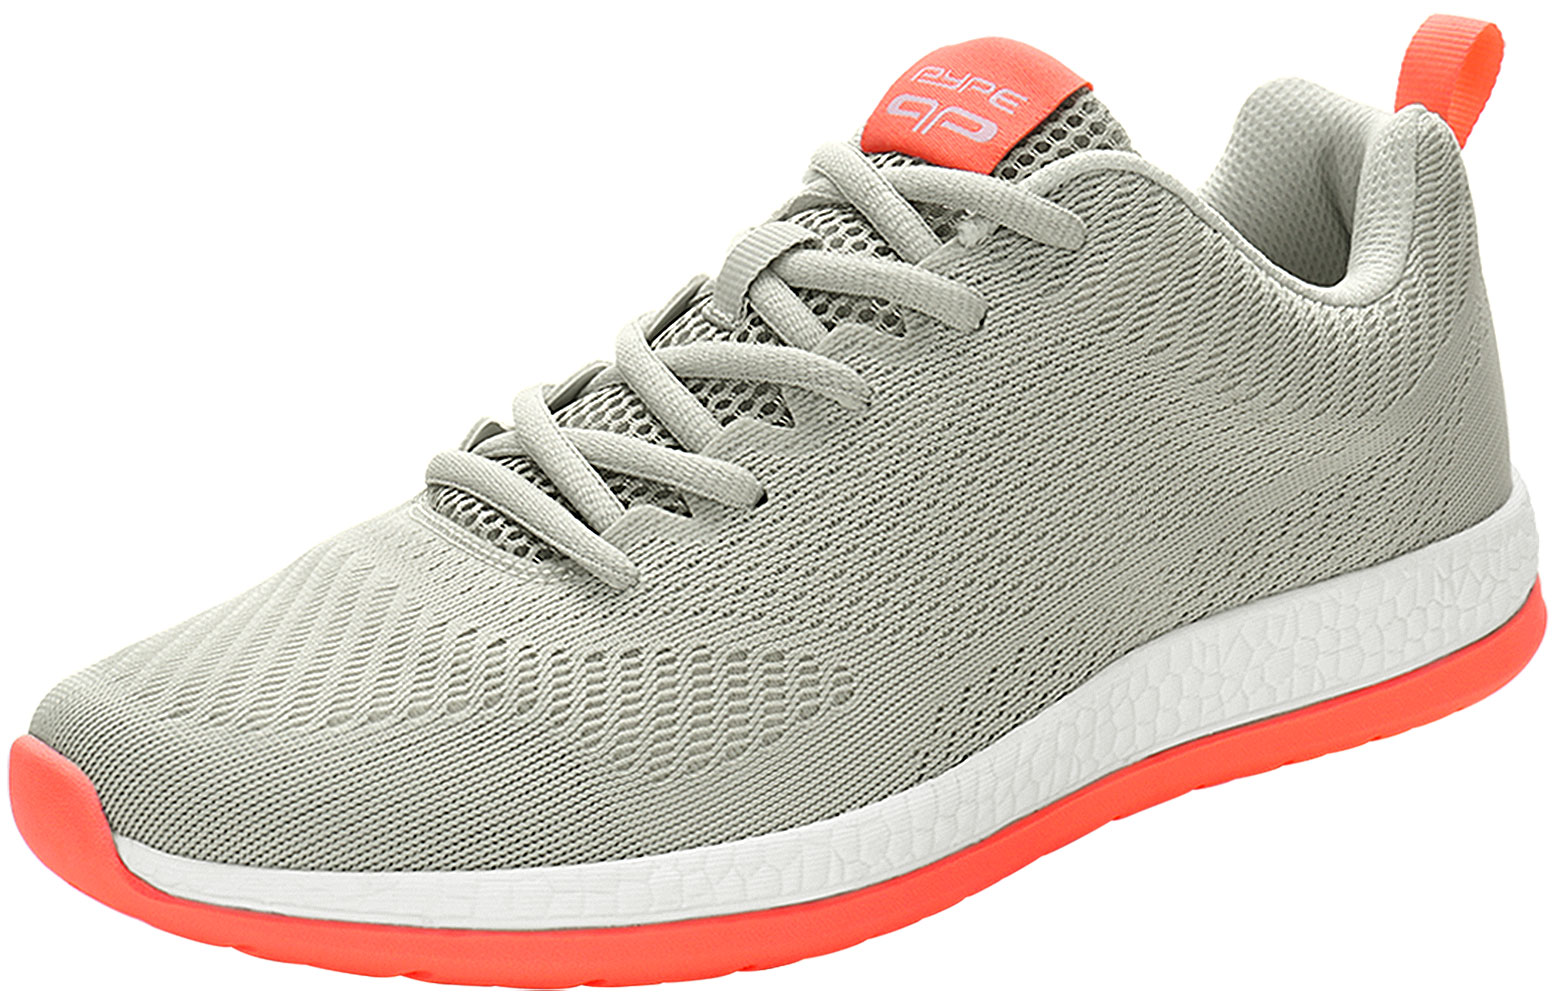 PYPE Women Mesh Contrast Color Round Toe Training Sneakers Gray US 9.5